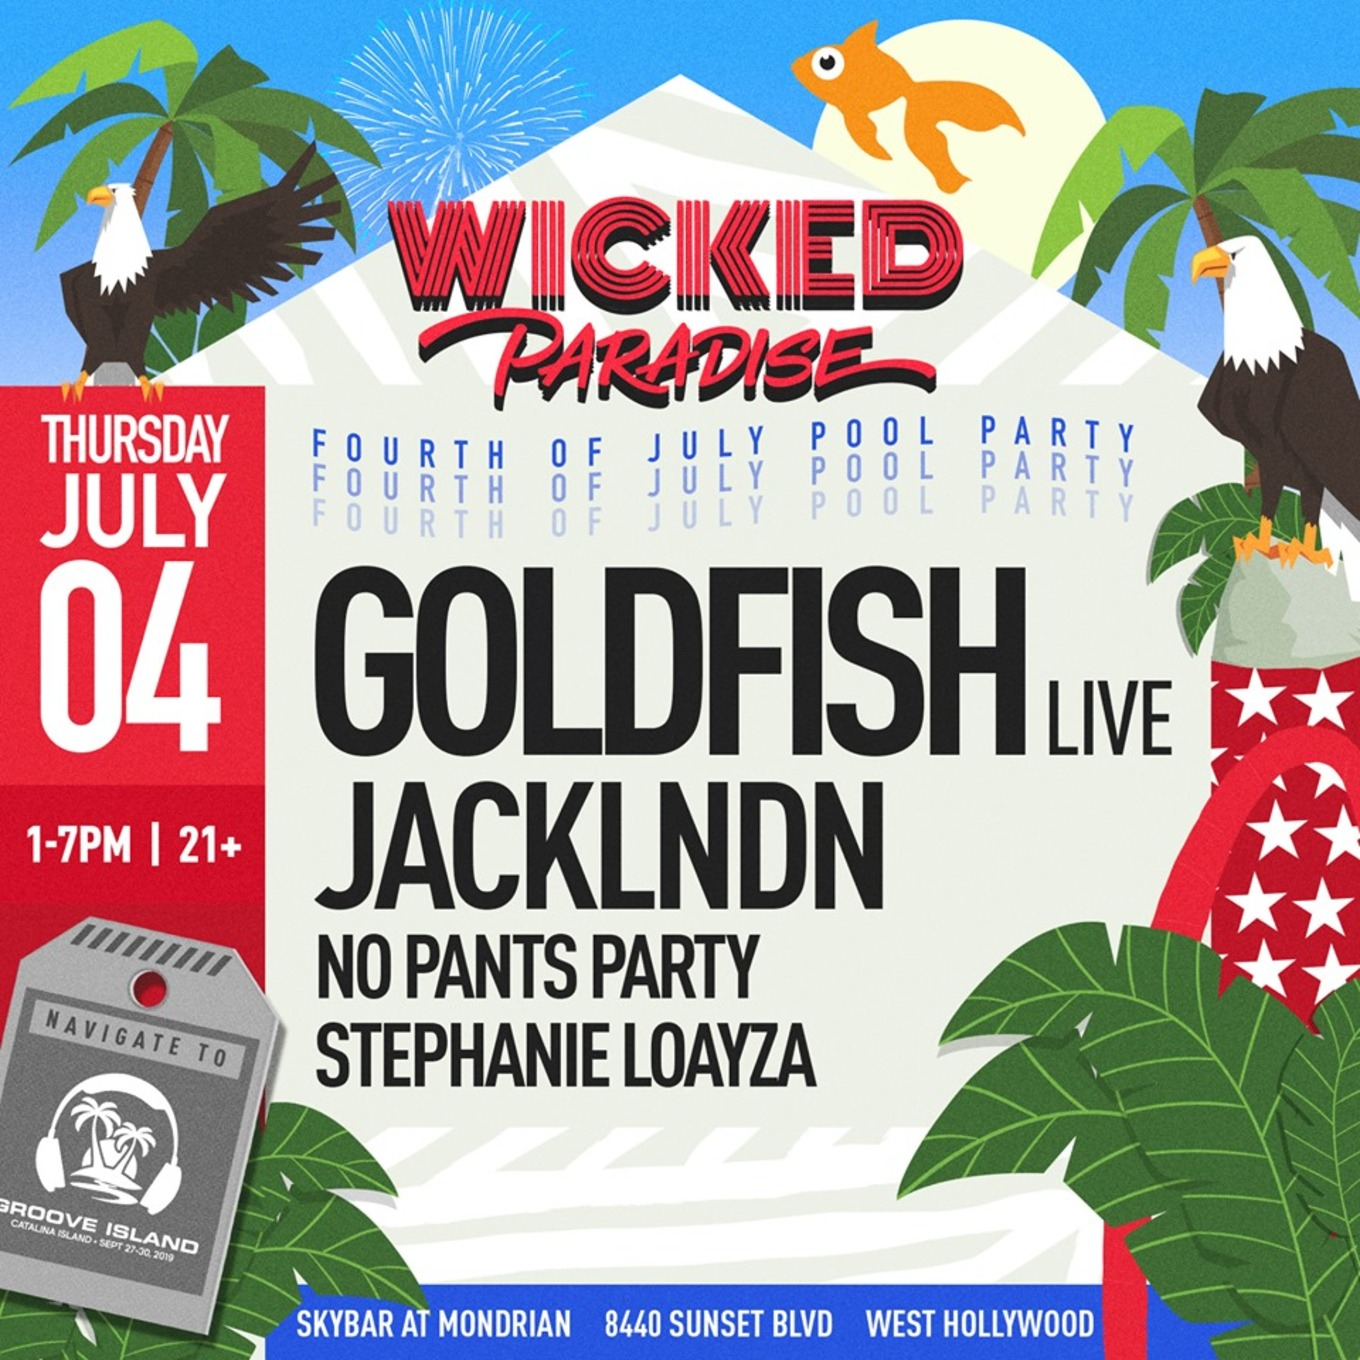 Wicked Paradise ft  Goldfish (Live) 4th of July POOL PARTY